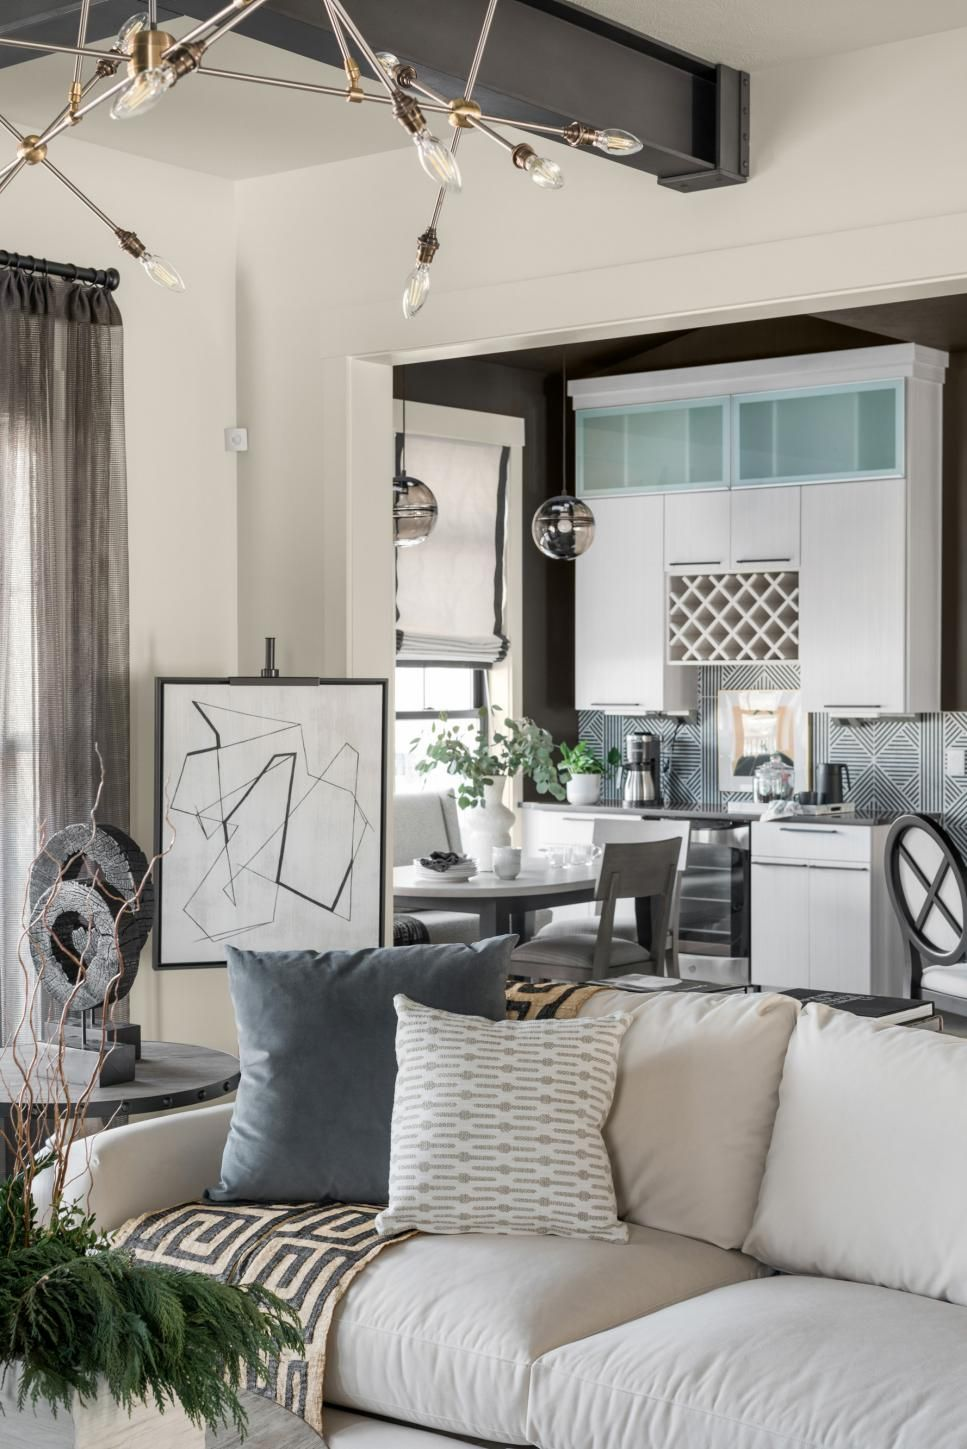 Pictures Of The Hgtv Smart Home 2020 Living Room Hgtv Smart Home 2020 Hgtv In 2020 Home Smart Home Great Rooms